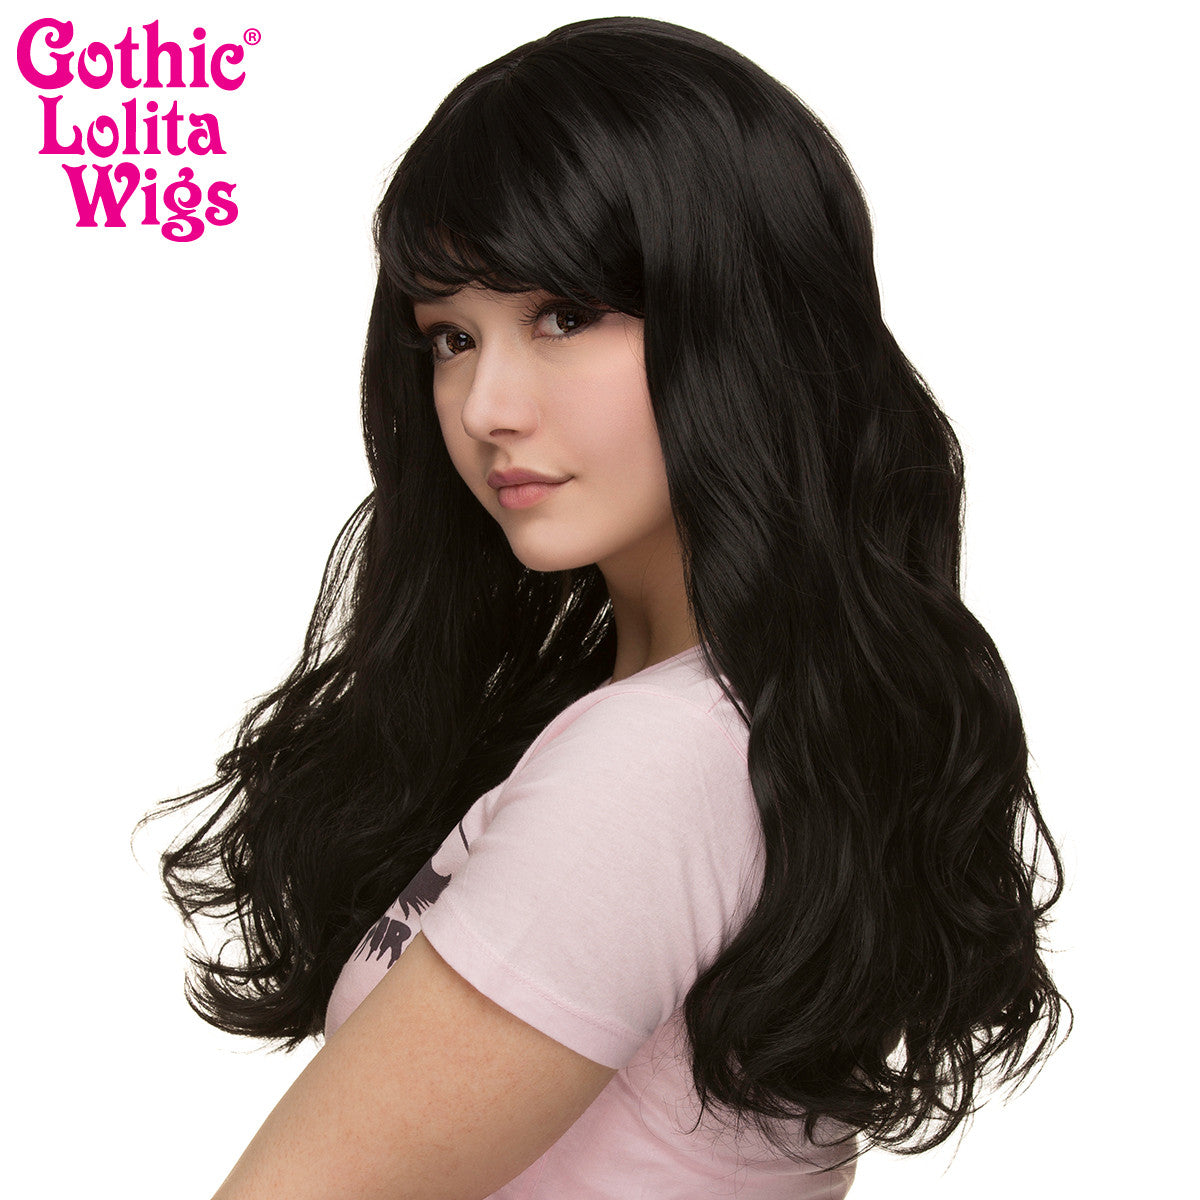 Gothic Lolita Wigs® <br> Heartbreaker Collection - Black -00066